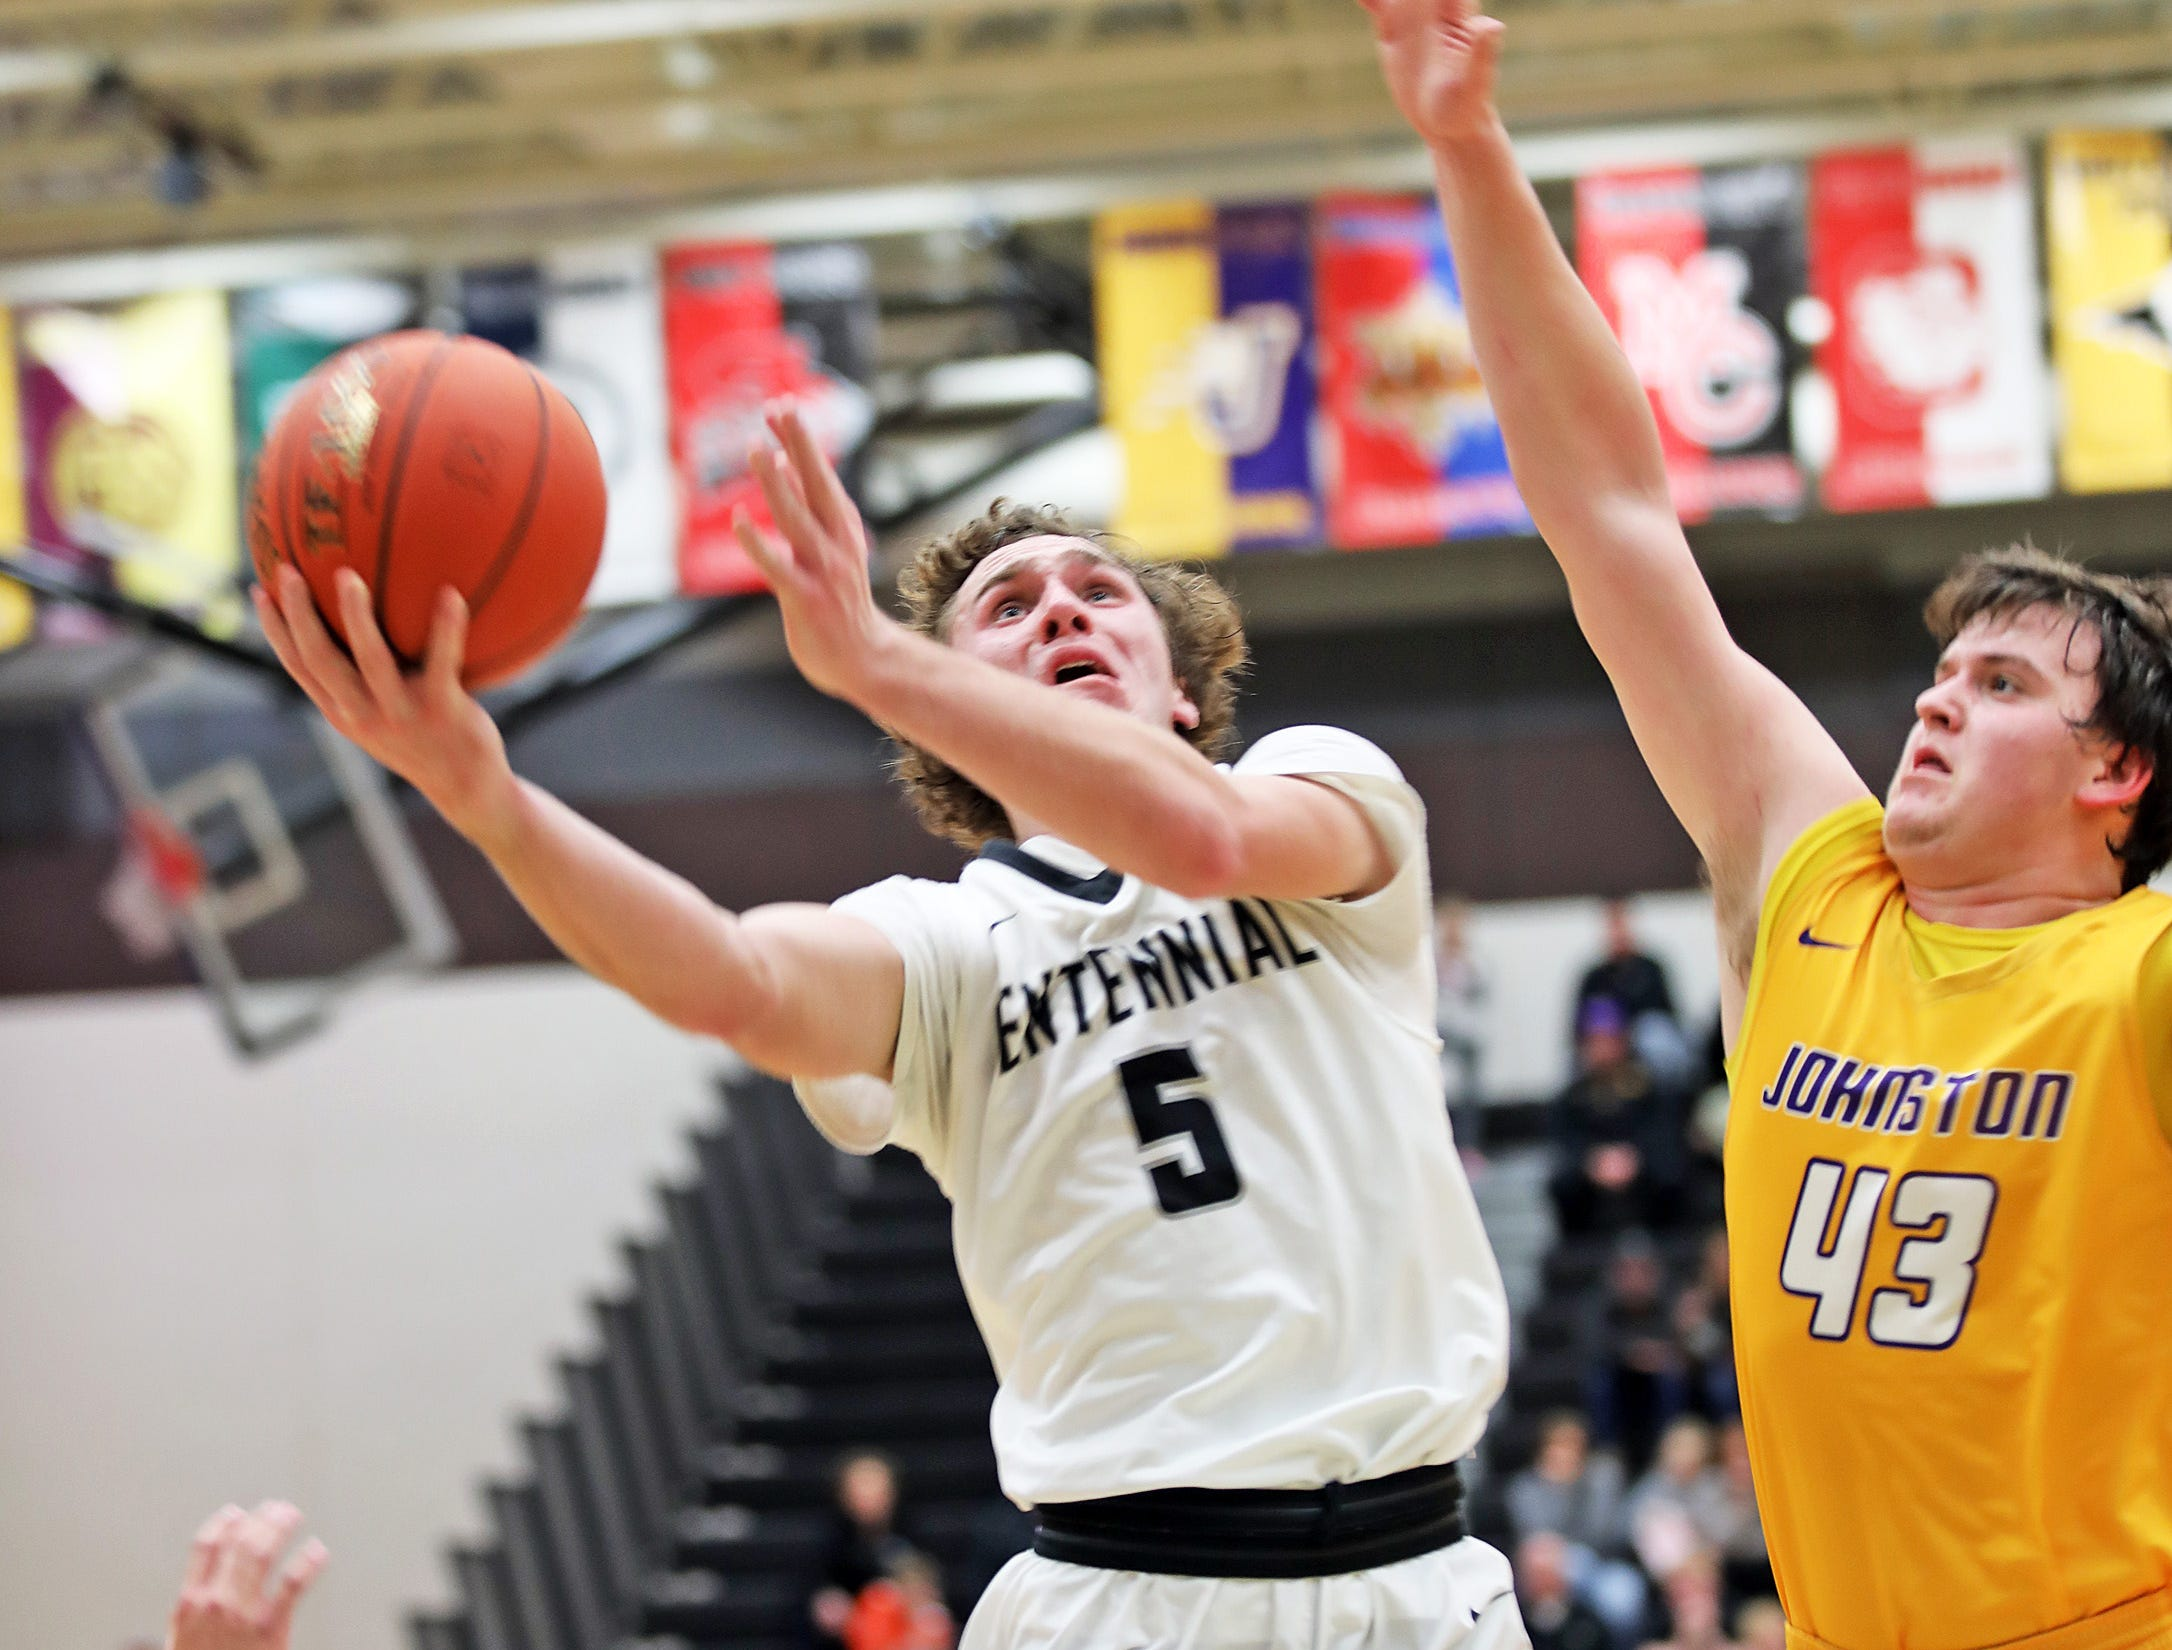 Ankeny Centennial junior Preston Kelling heads for a lay-up as the Johnston Dragons compete against the Ankeny Centennial Jaguars in high school boys basketball on Friday, Jan. 4, 2019 at Ankeny Centennial High School.